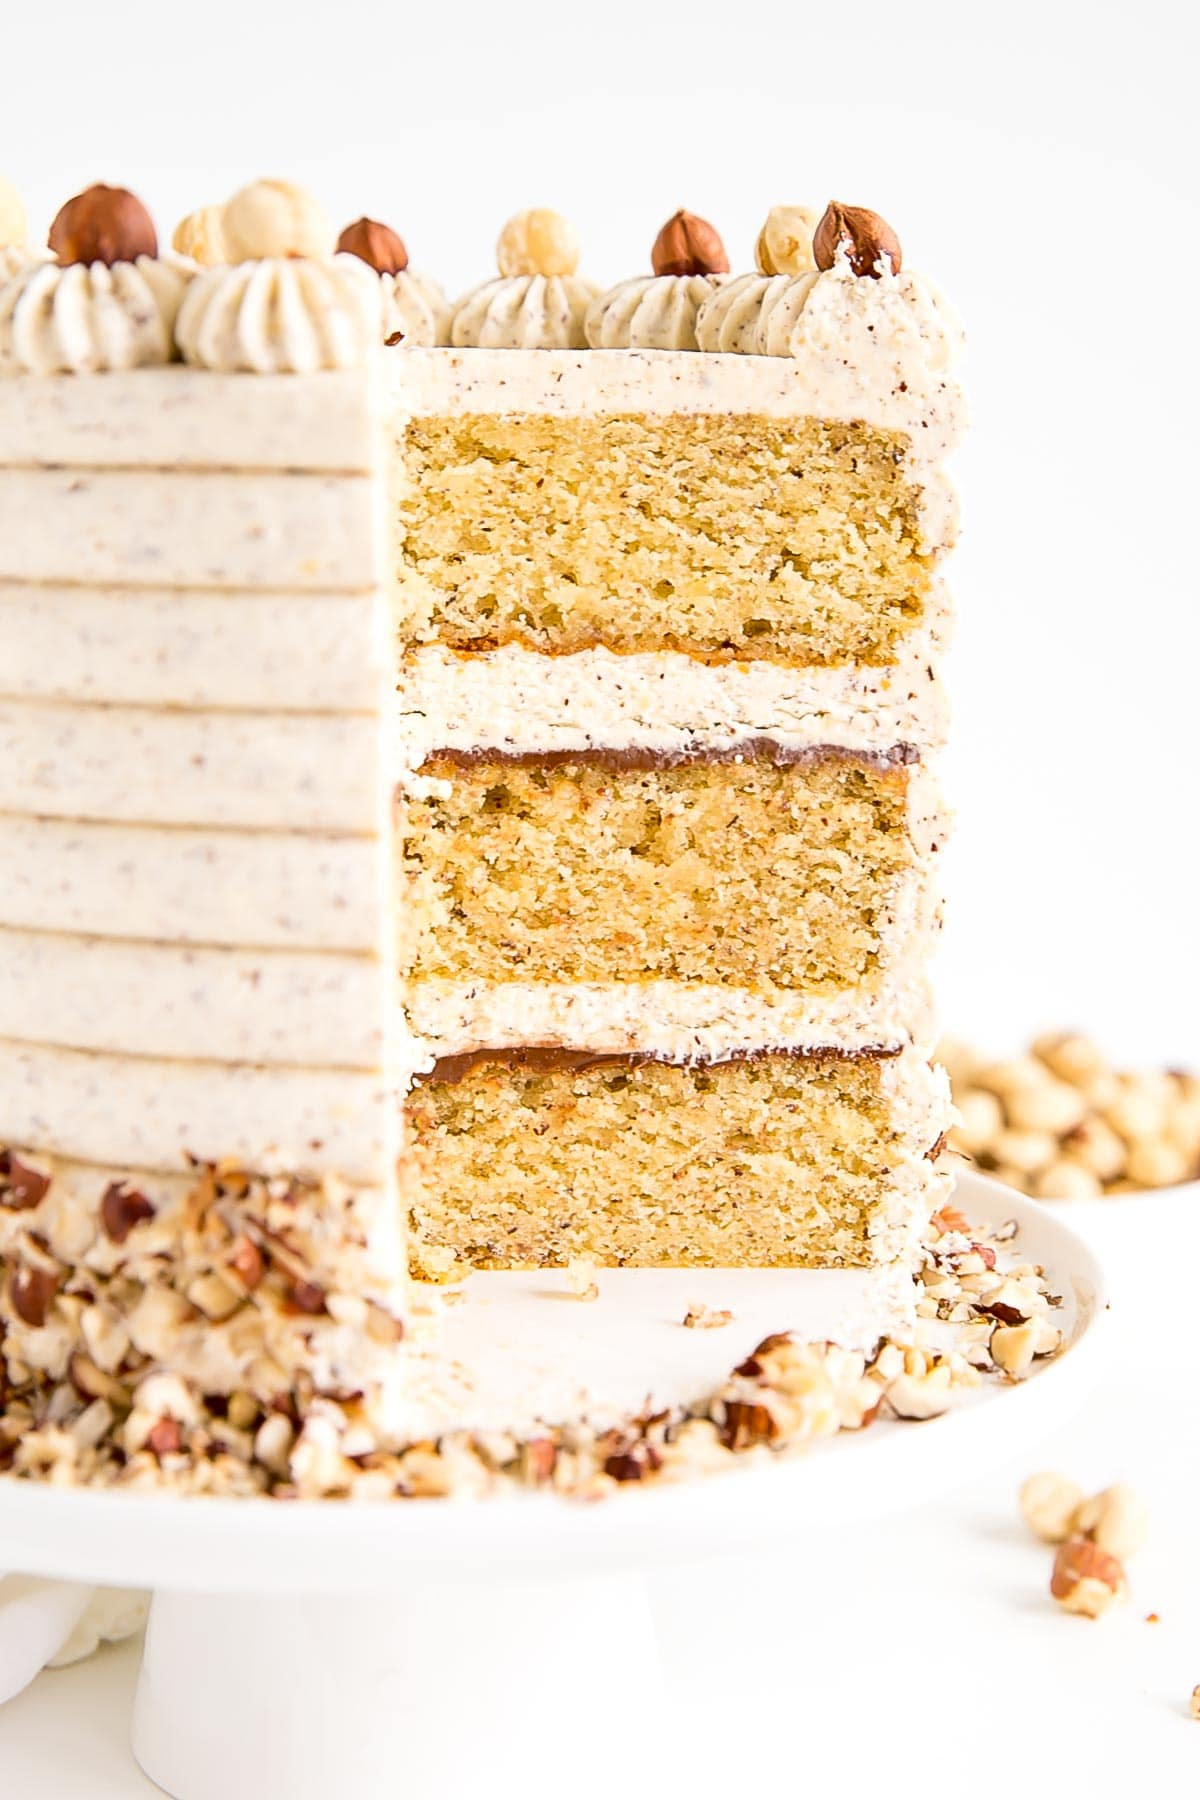 Cross-section of the cake showing the cake layers.